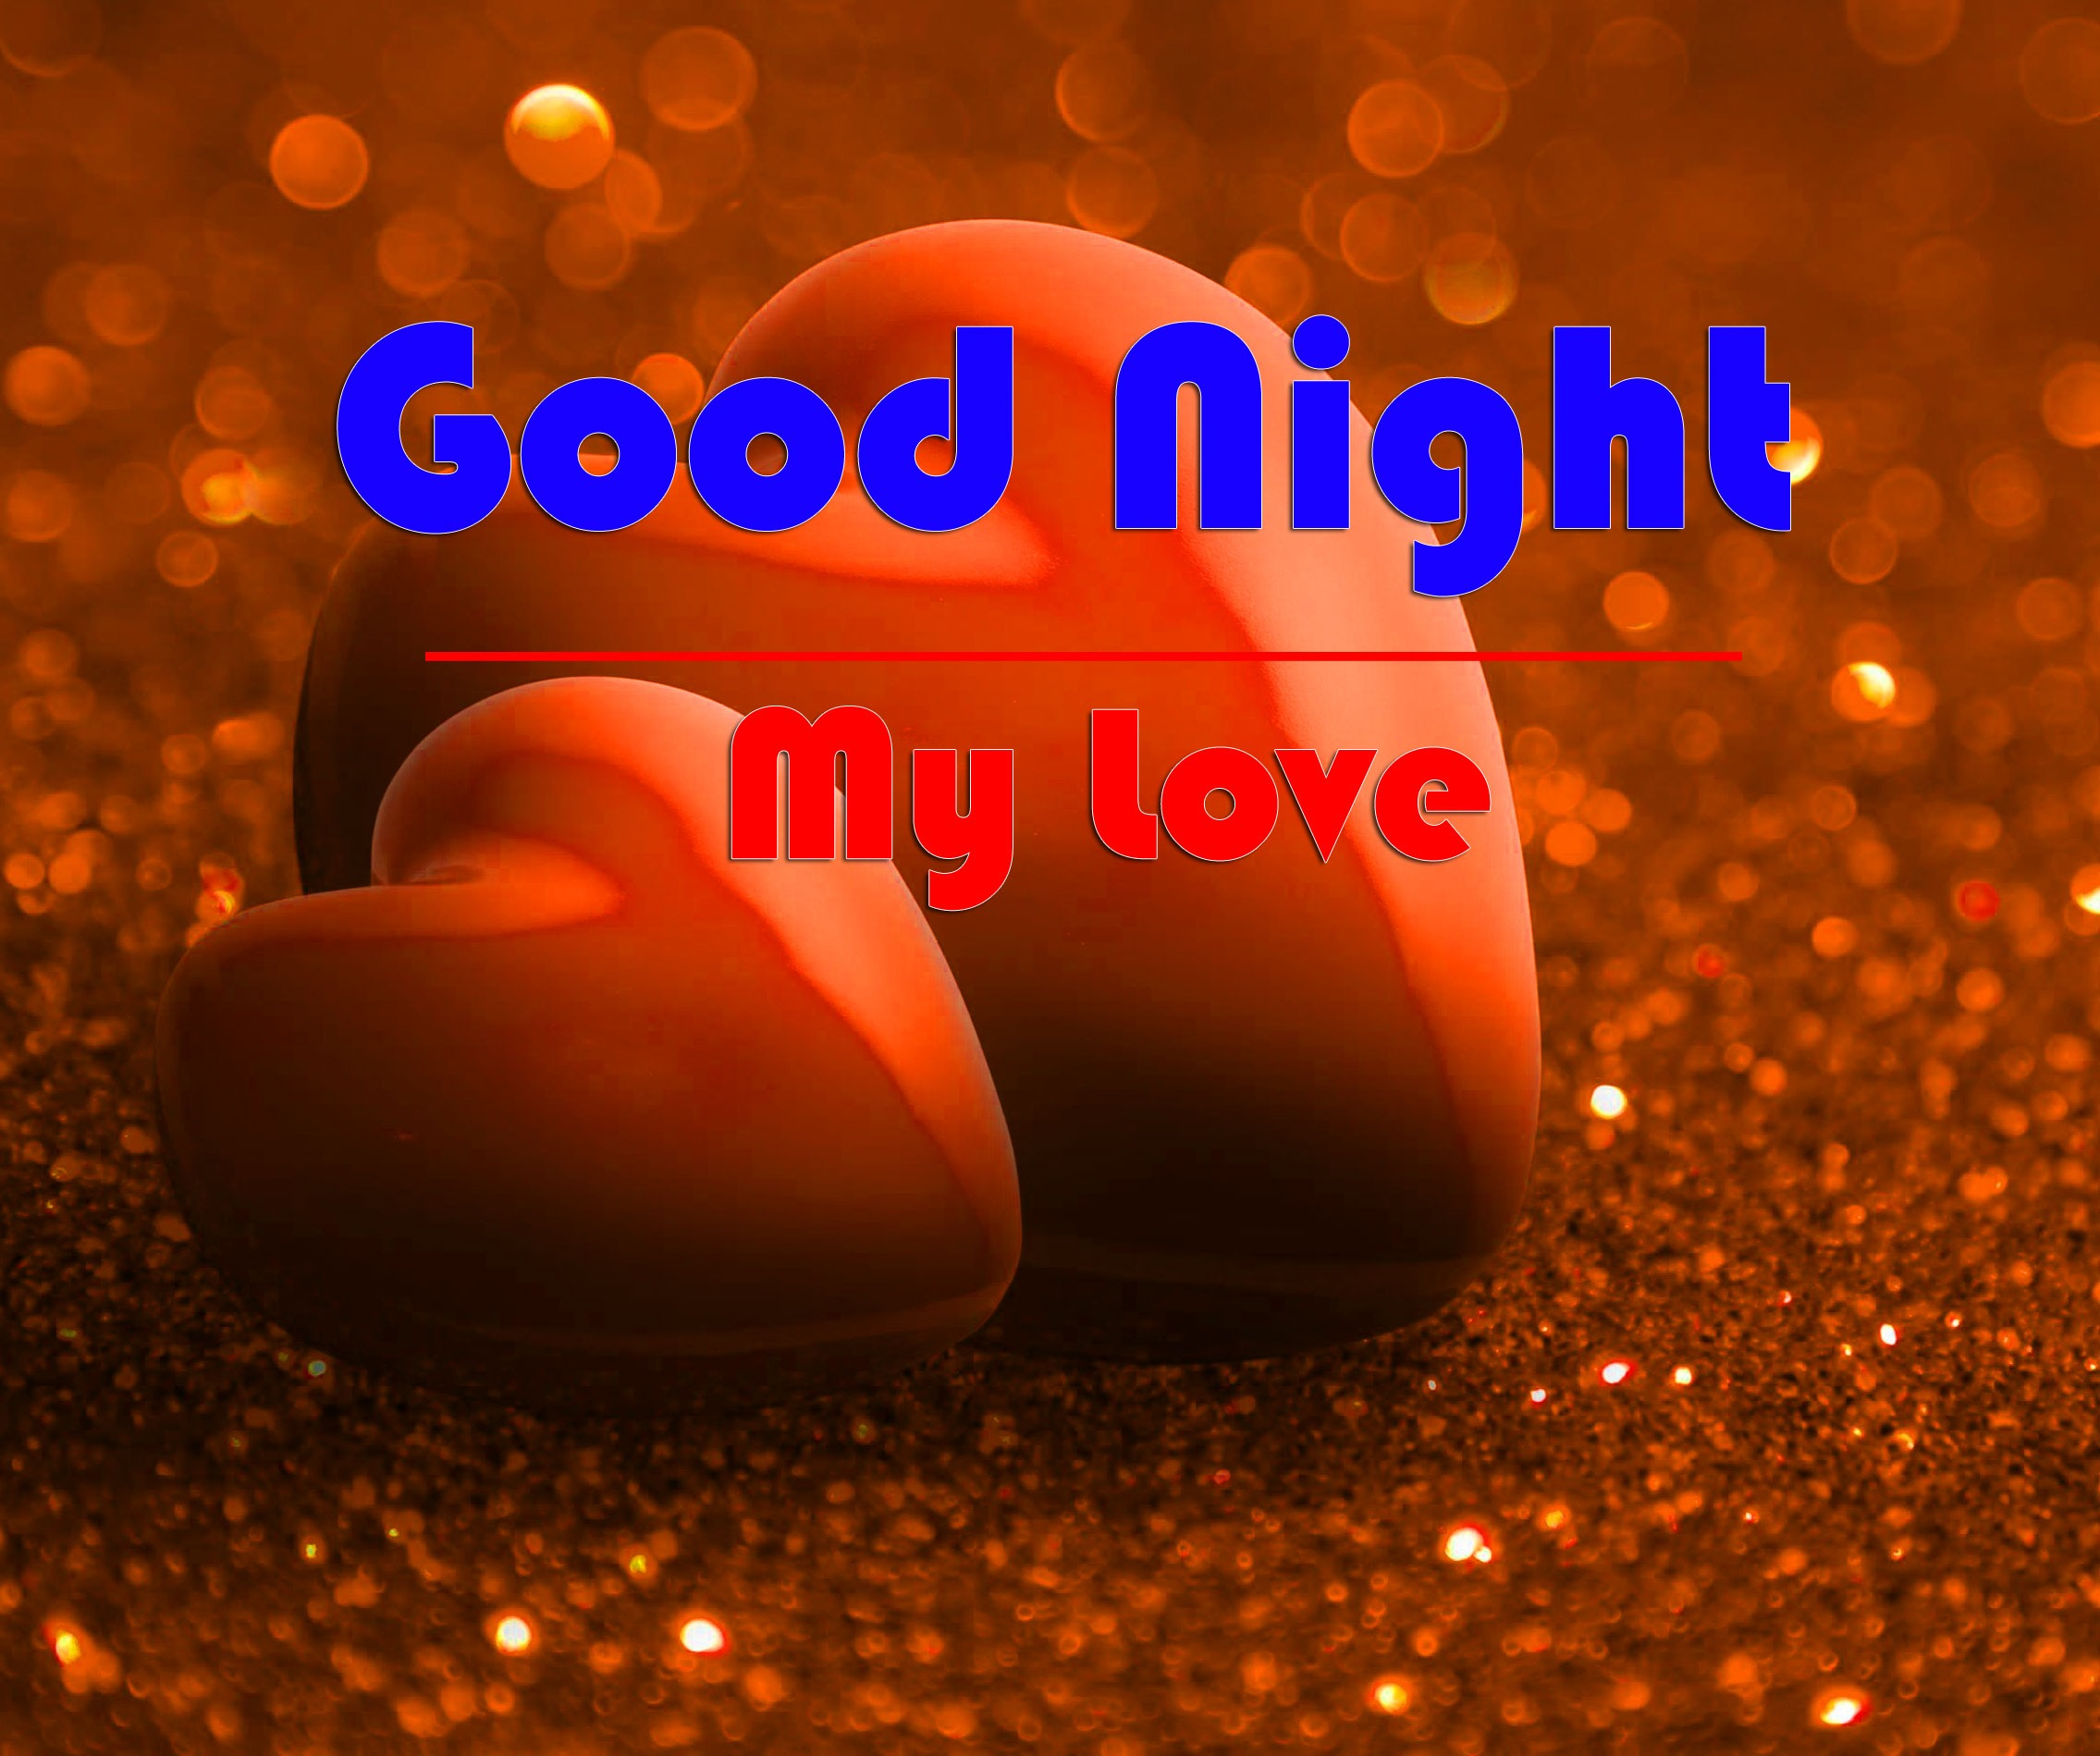 HD Good Night Wallpaper With Heart